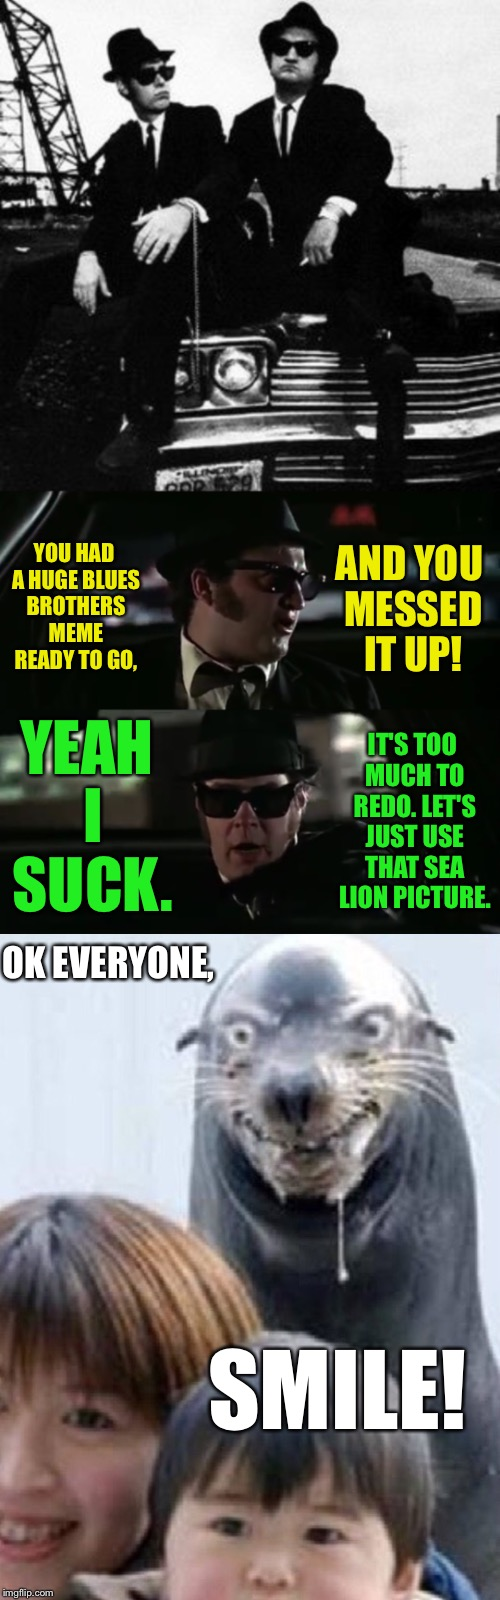 Movie Week - The Blues Brothers - No Really, I Suck - A SpursFanFromAround And haramisbae Event | YOU HAD A HUGE BLUES BROTHERS MEME READY TO GO, AND YOU MESSED IT UP! YEAH I SUCK. IT'S TOO MUCH TO REDO. LET'S JUST USE THAT SEA LION PICTU | image tagged in movie week,movies,blues brothers,sea lion,zoo,funny picture | made w/ Imgflip meme maker